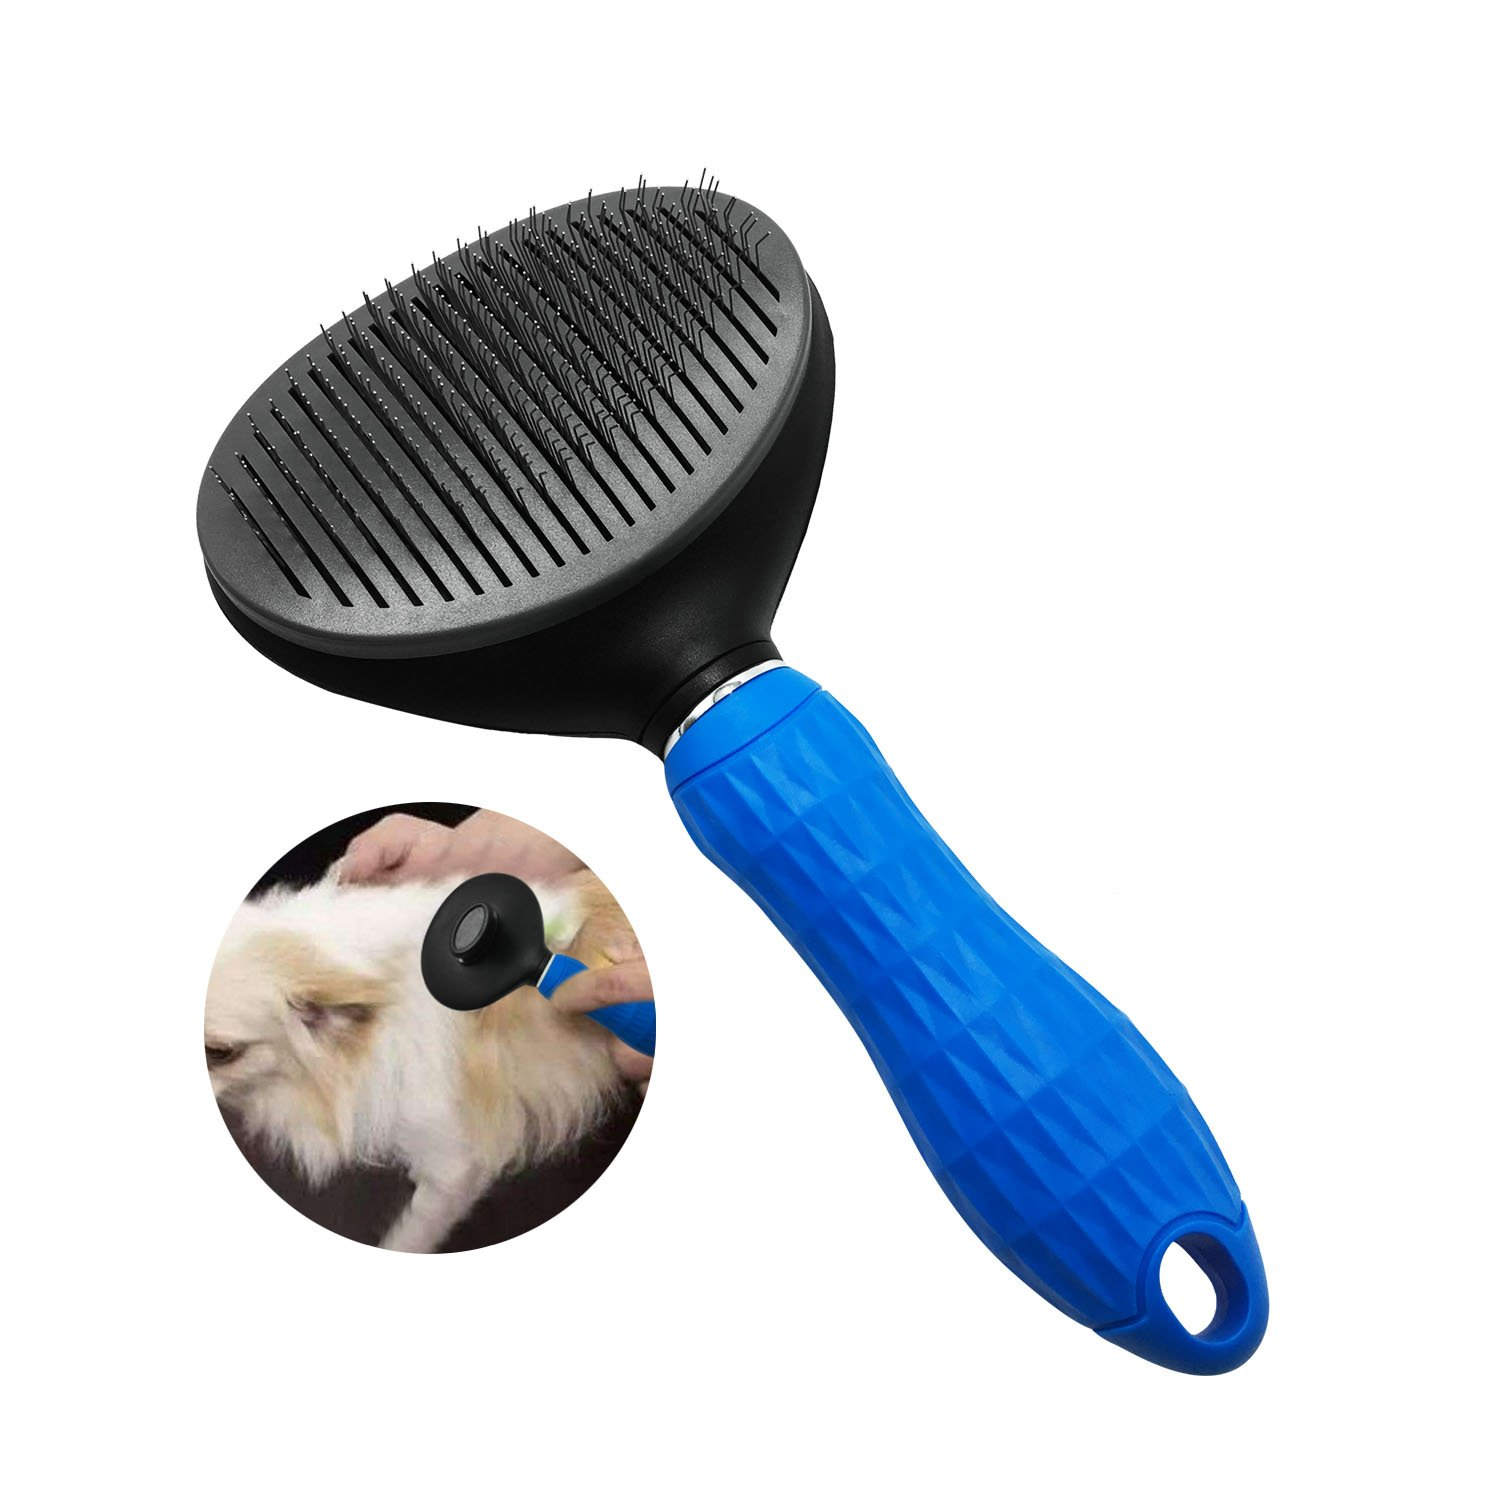 Large, bluee FurPro pet self-Cleaning Slicker Brush for Dogs,Easy to Remove Loose Hair, Large